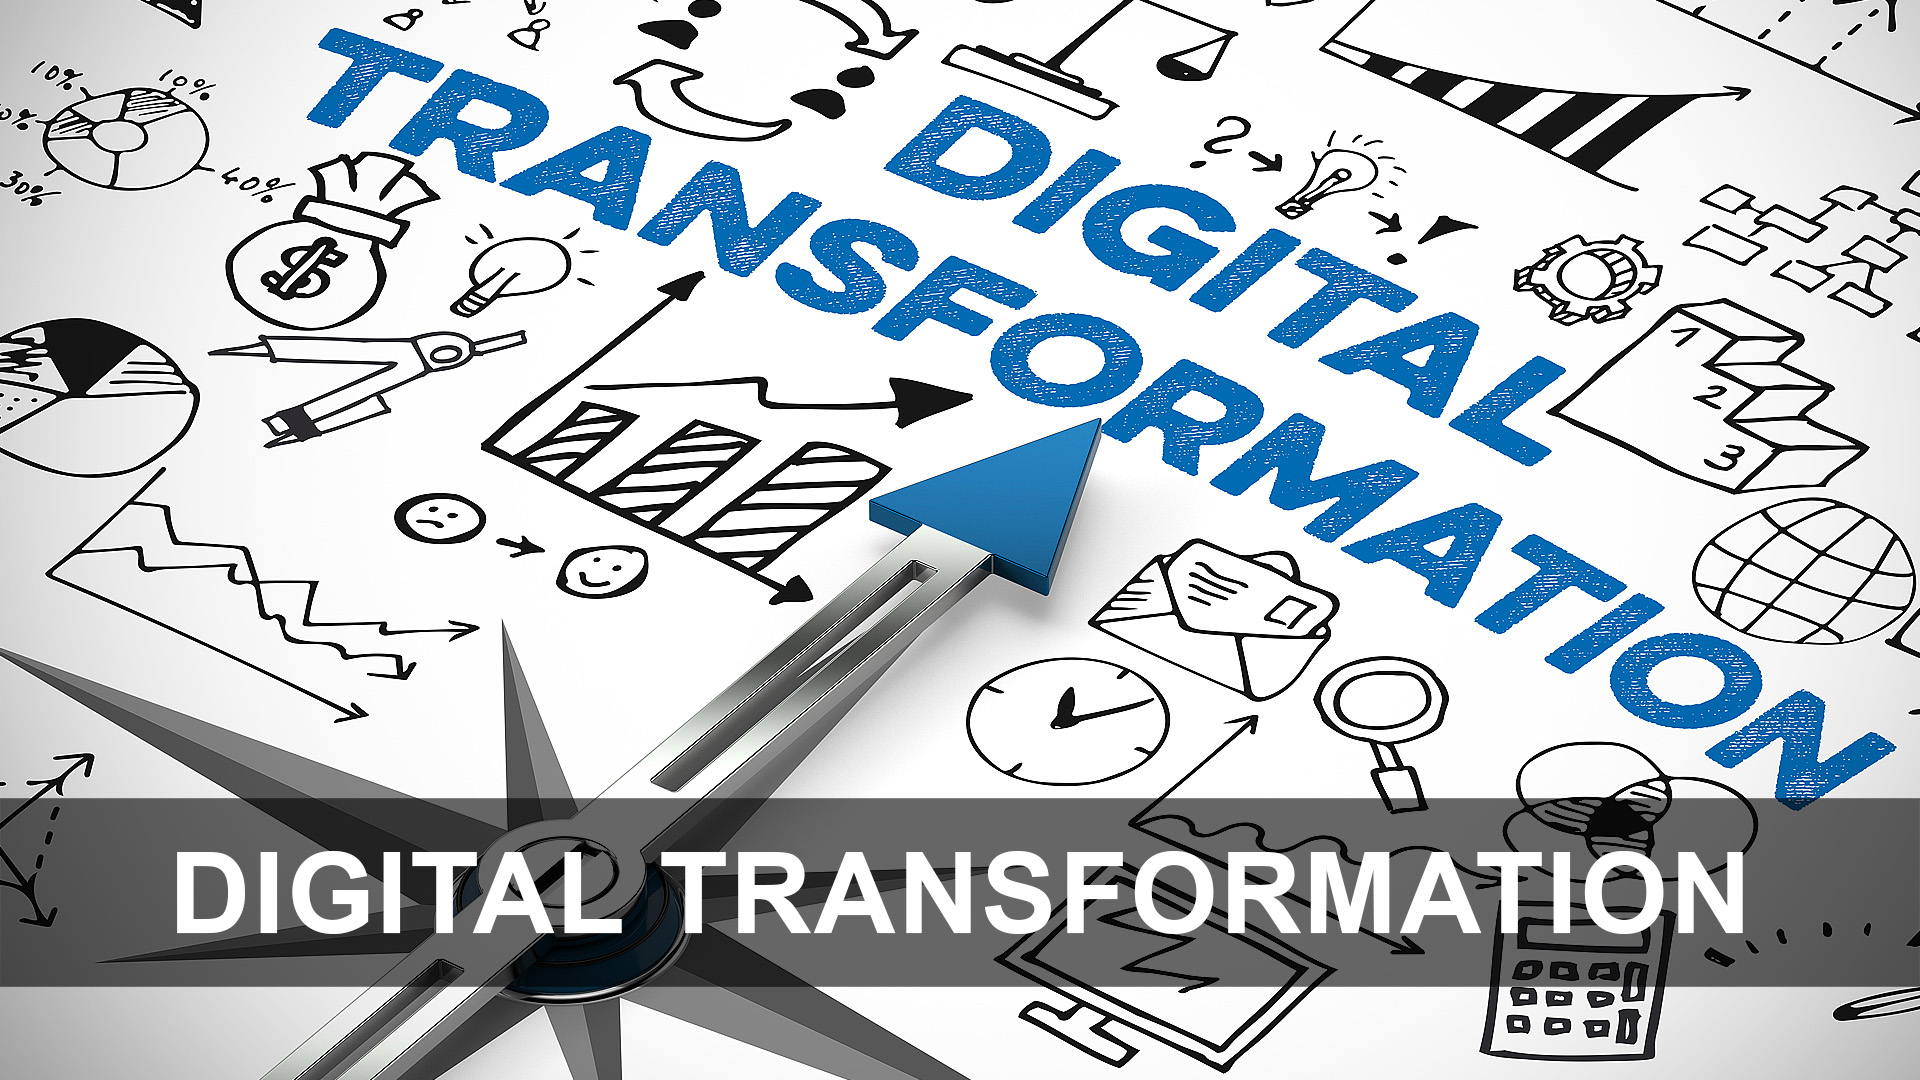 Digital Transformation Icon.jpg